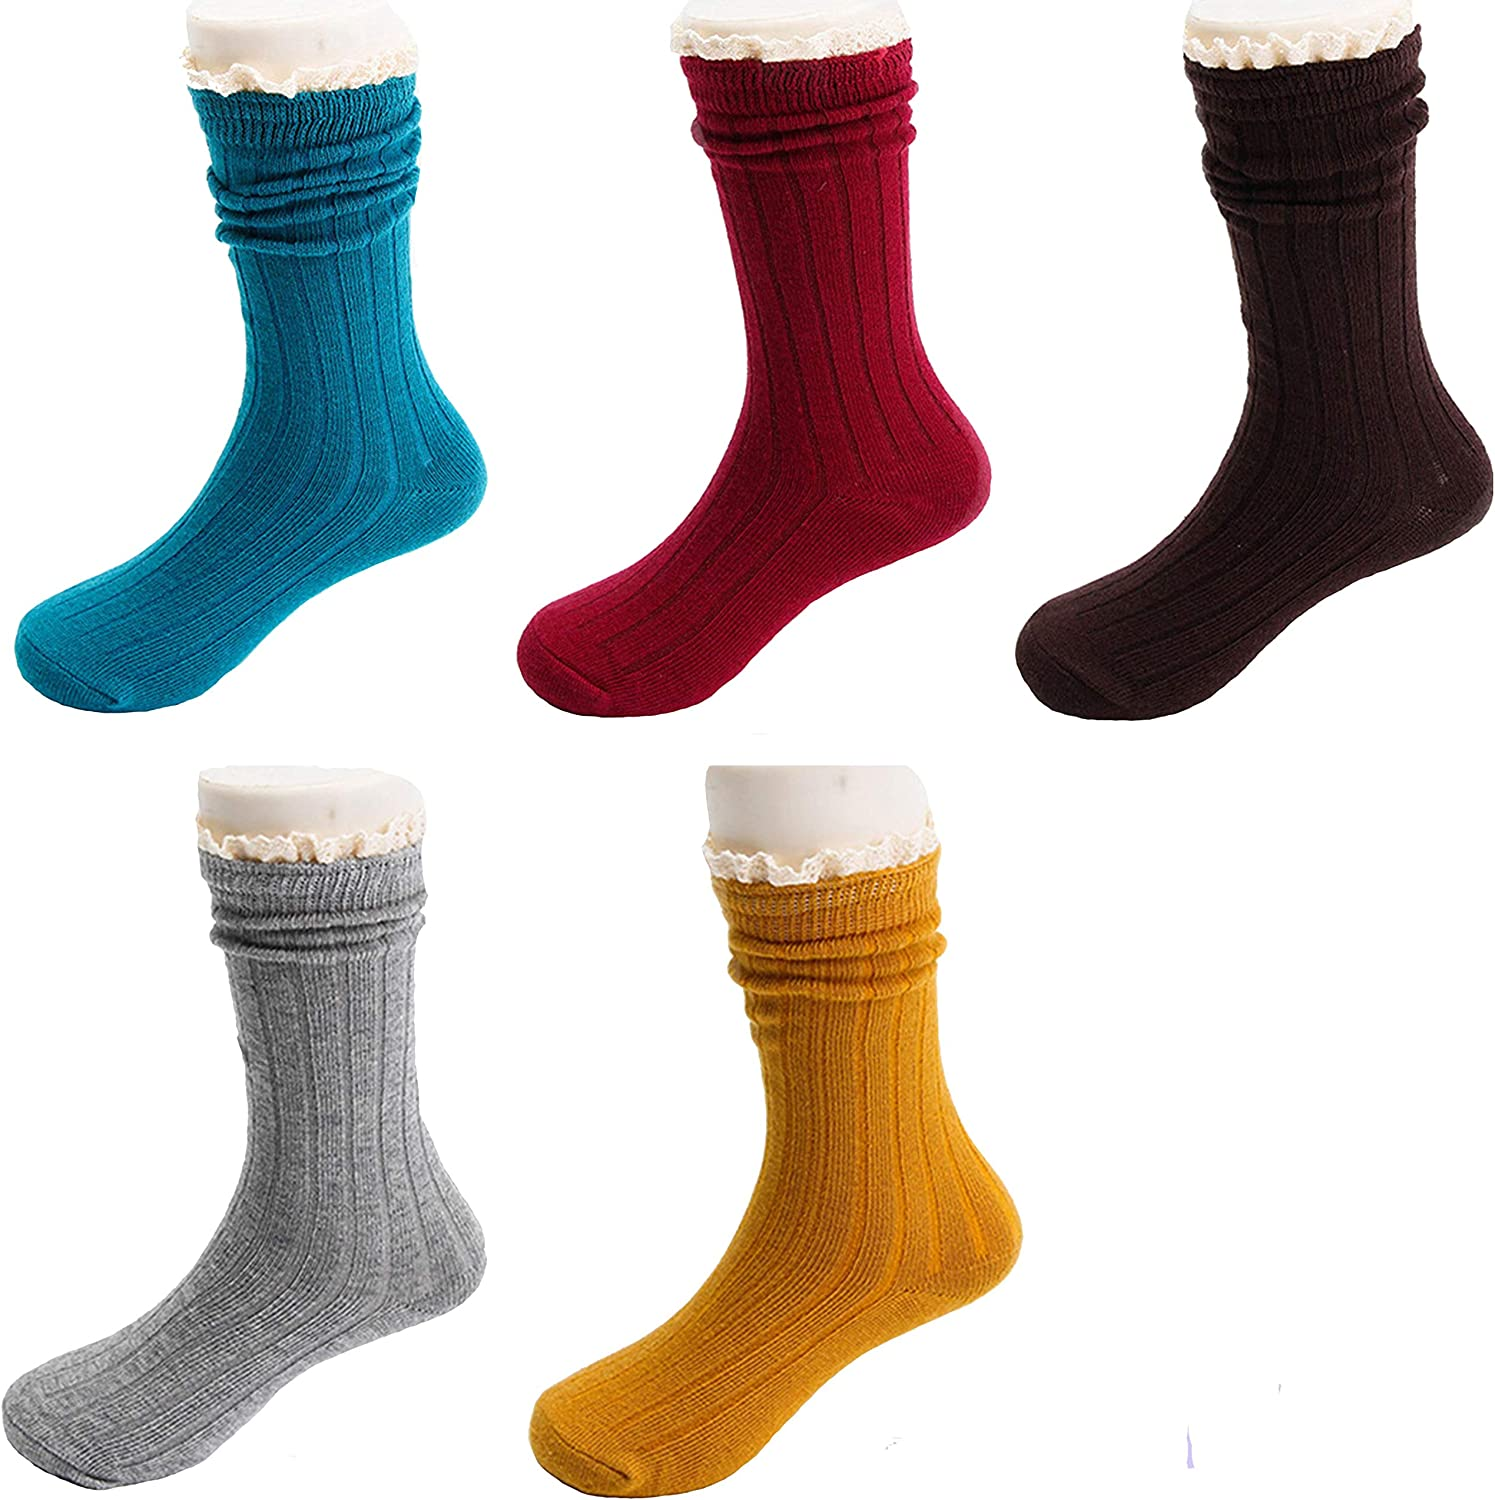 5 Pack Girls Sweet Socks Lace Trim Cotton Knit Footed Leg Boot Stocking (6-8 years)